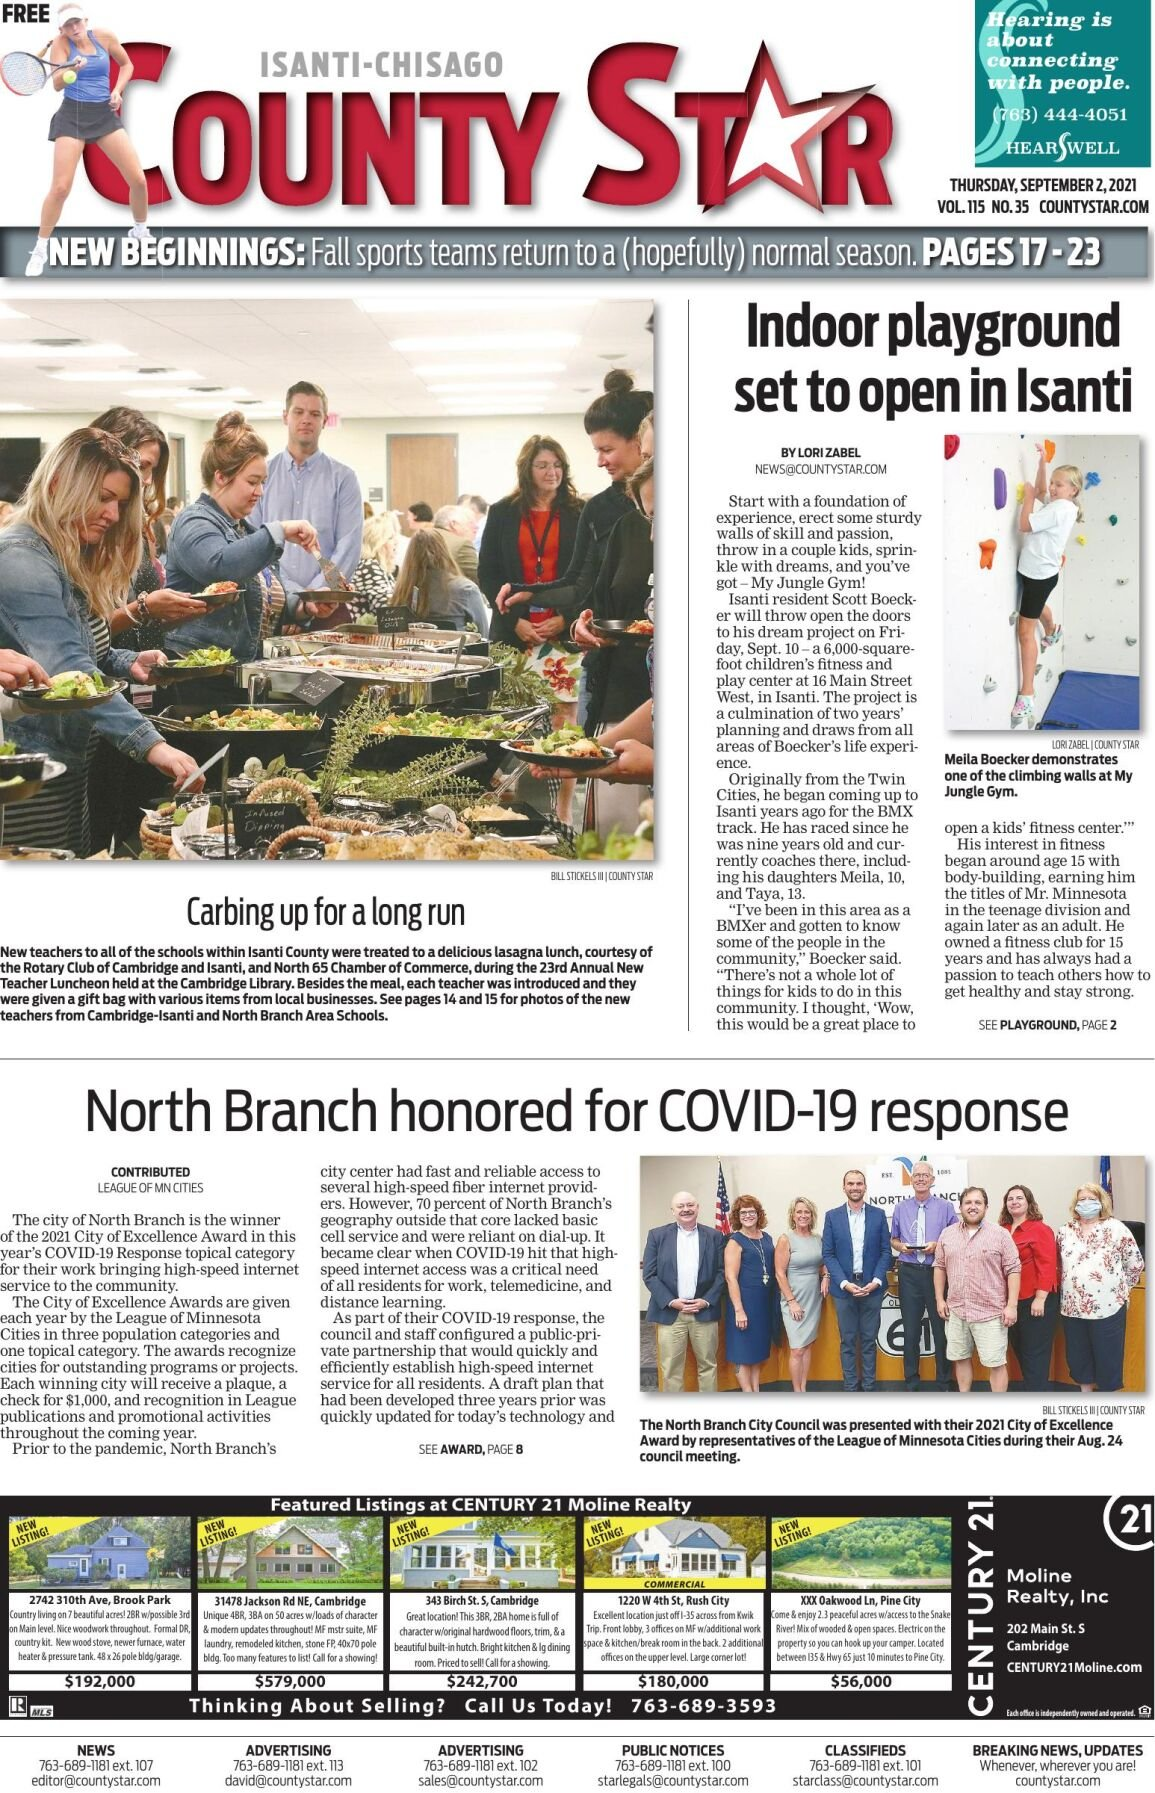 Isanti-Chisago County Star September 2, 2021 e-edition